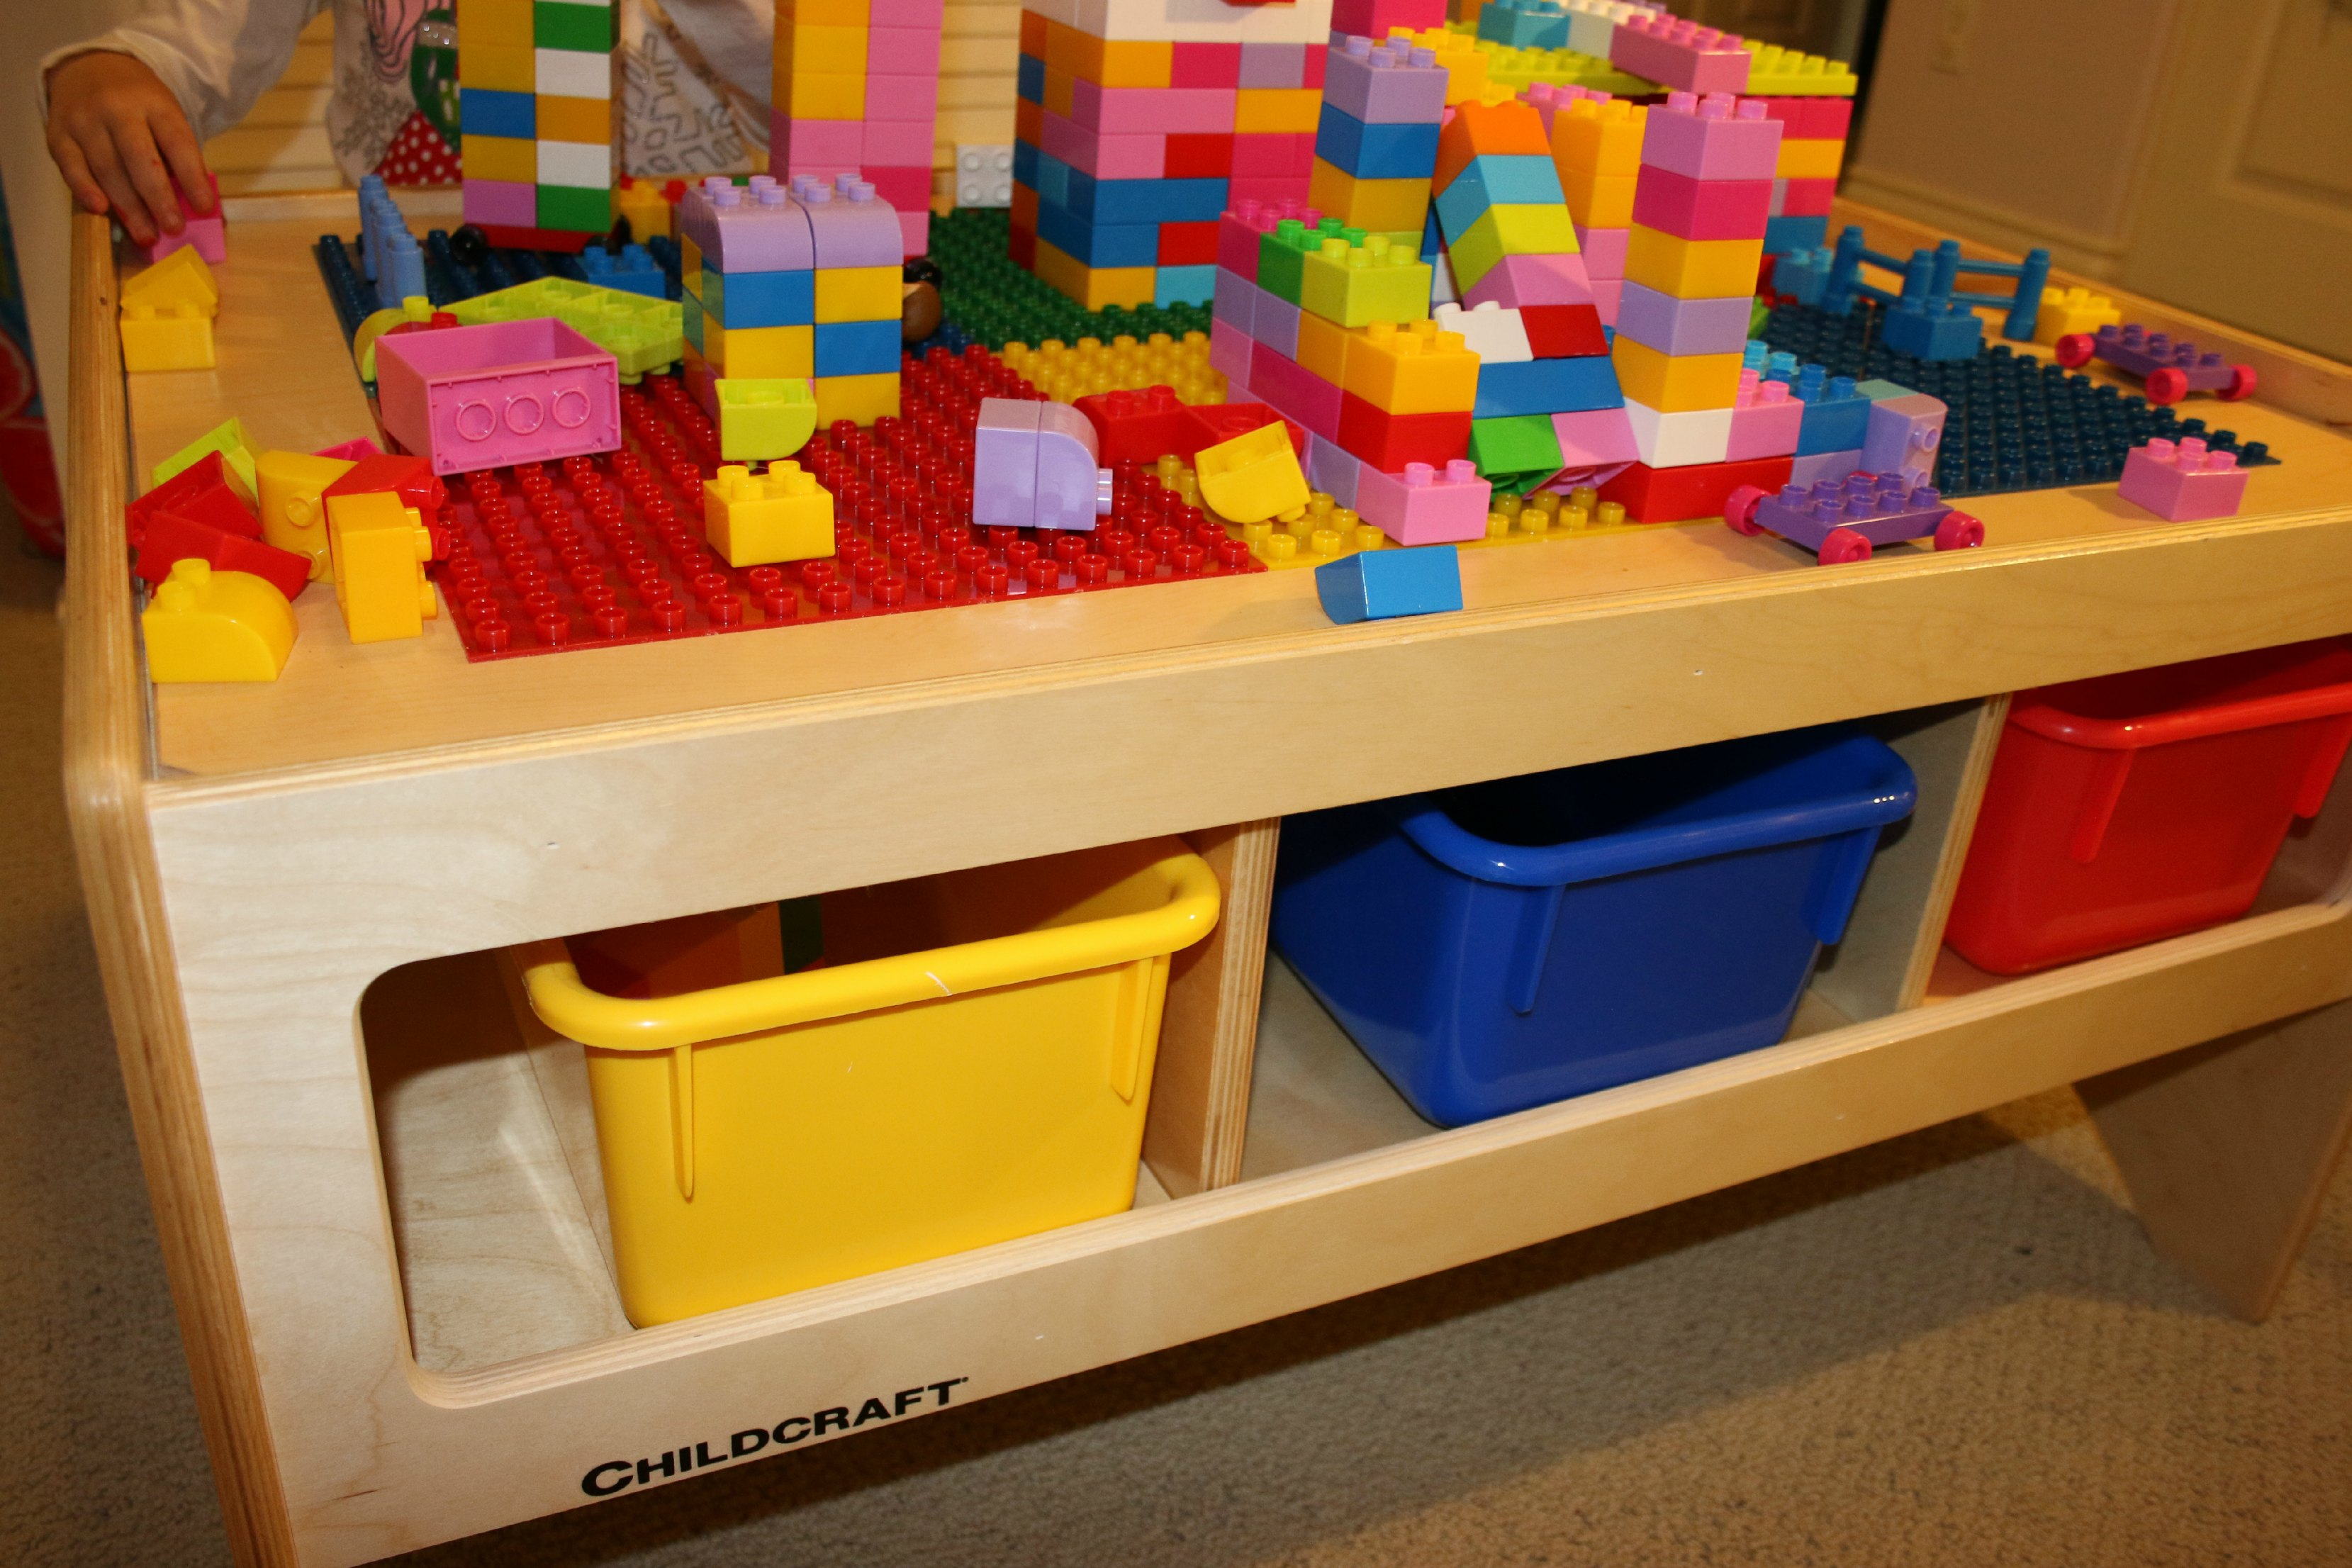 childcraft boxes in table